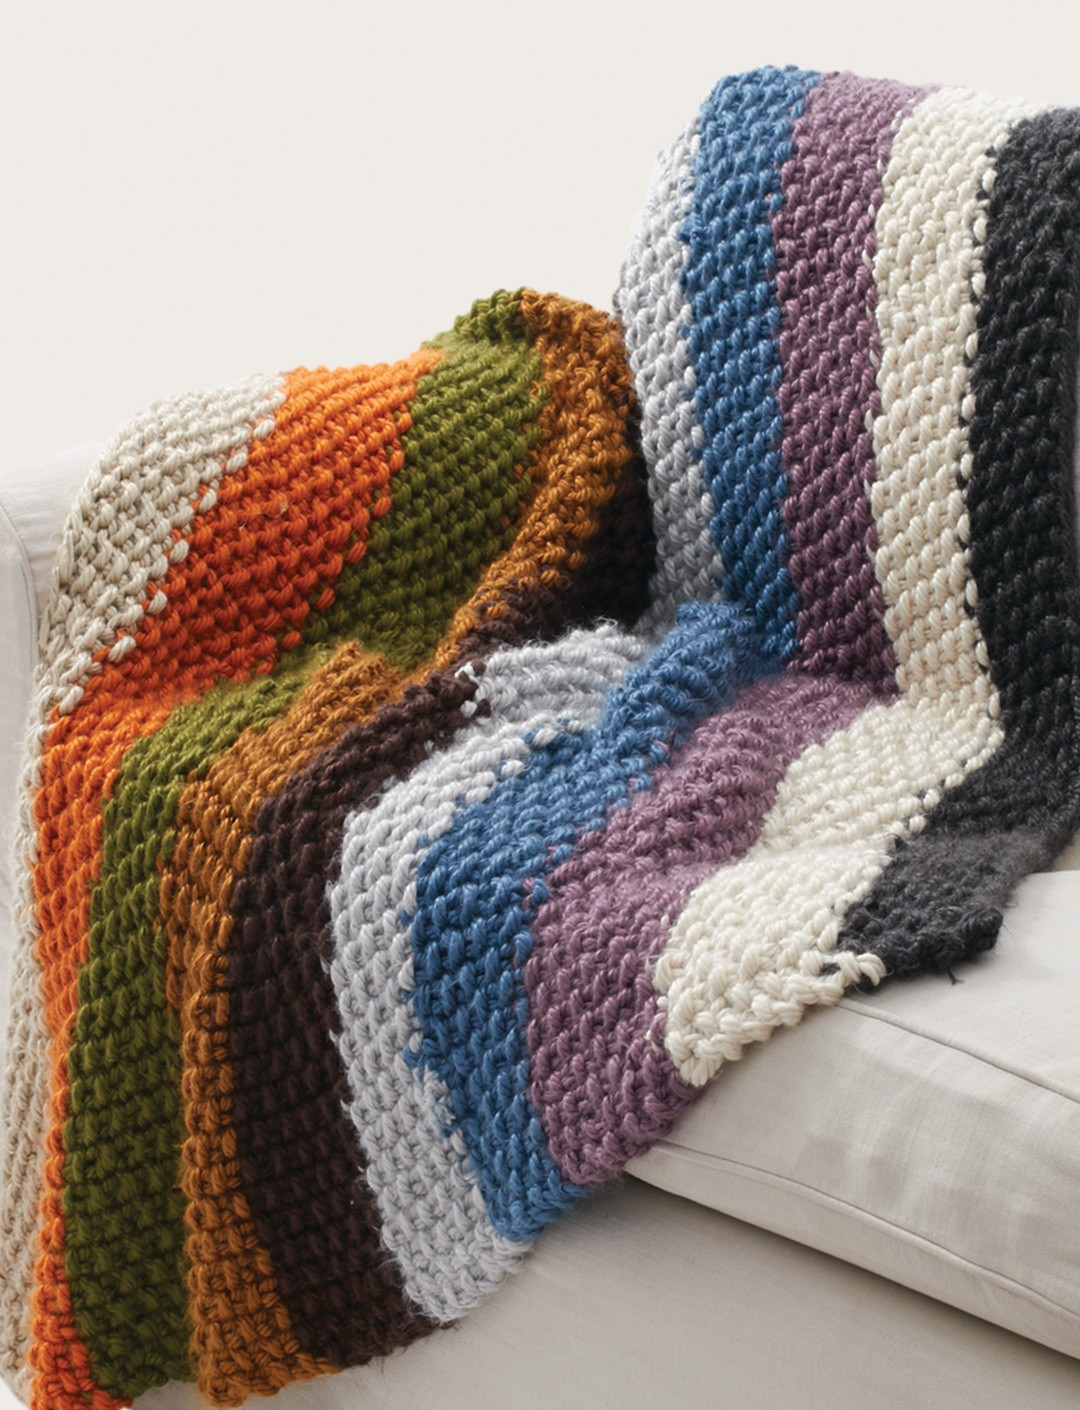 Knitting Pattern Yrn : Bernat Seed Stitch Blanket, Knit Pattern Yarnspirations